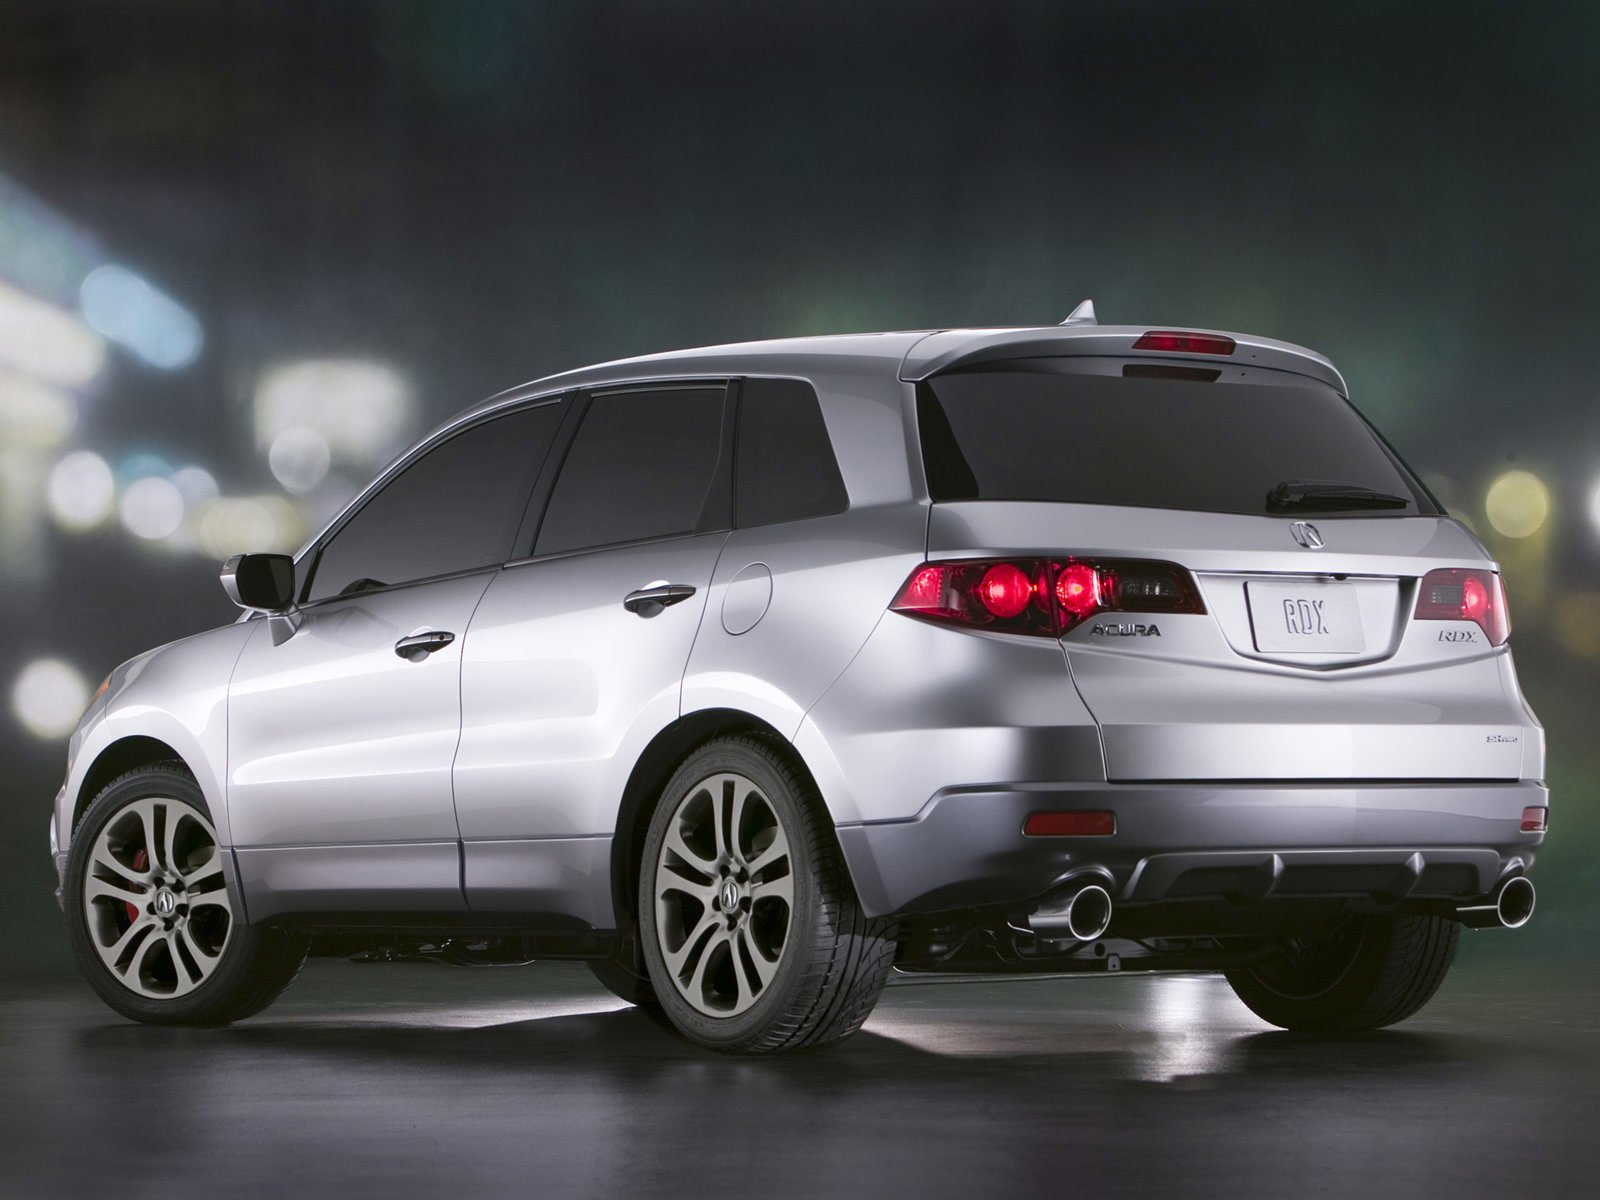 Latest 2006 Acura Rdx Prototype Japanese Car Photos Free Download